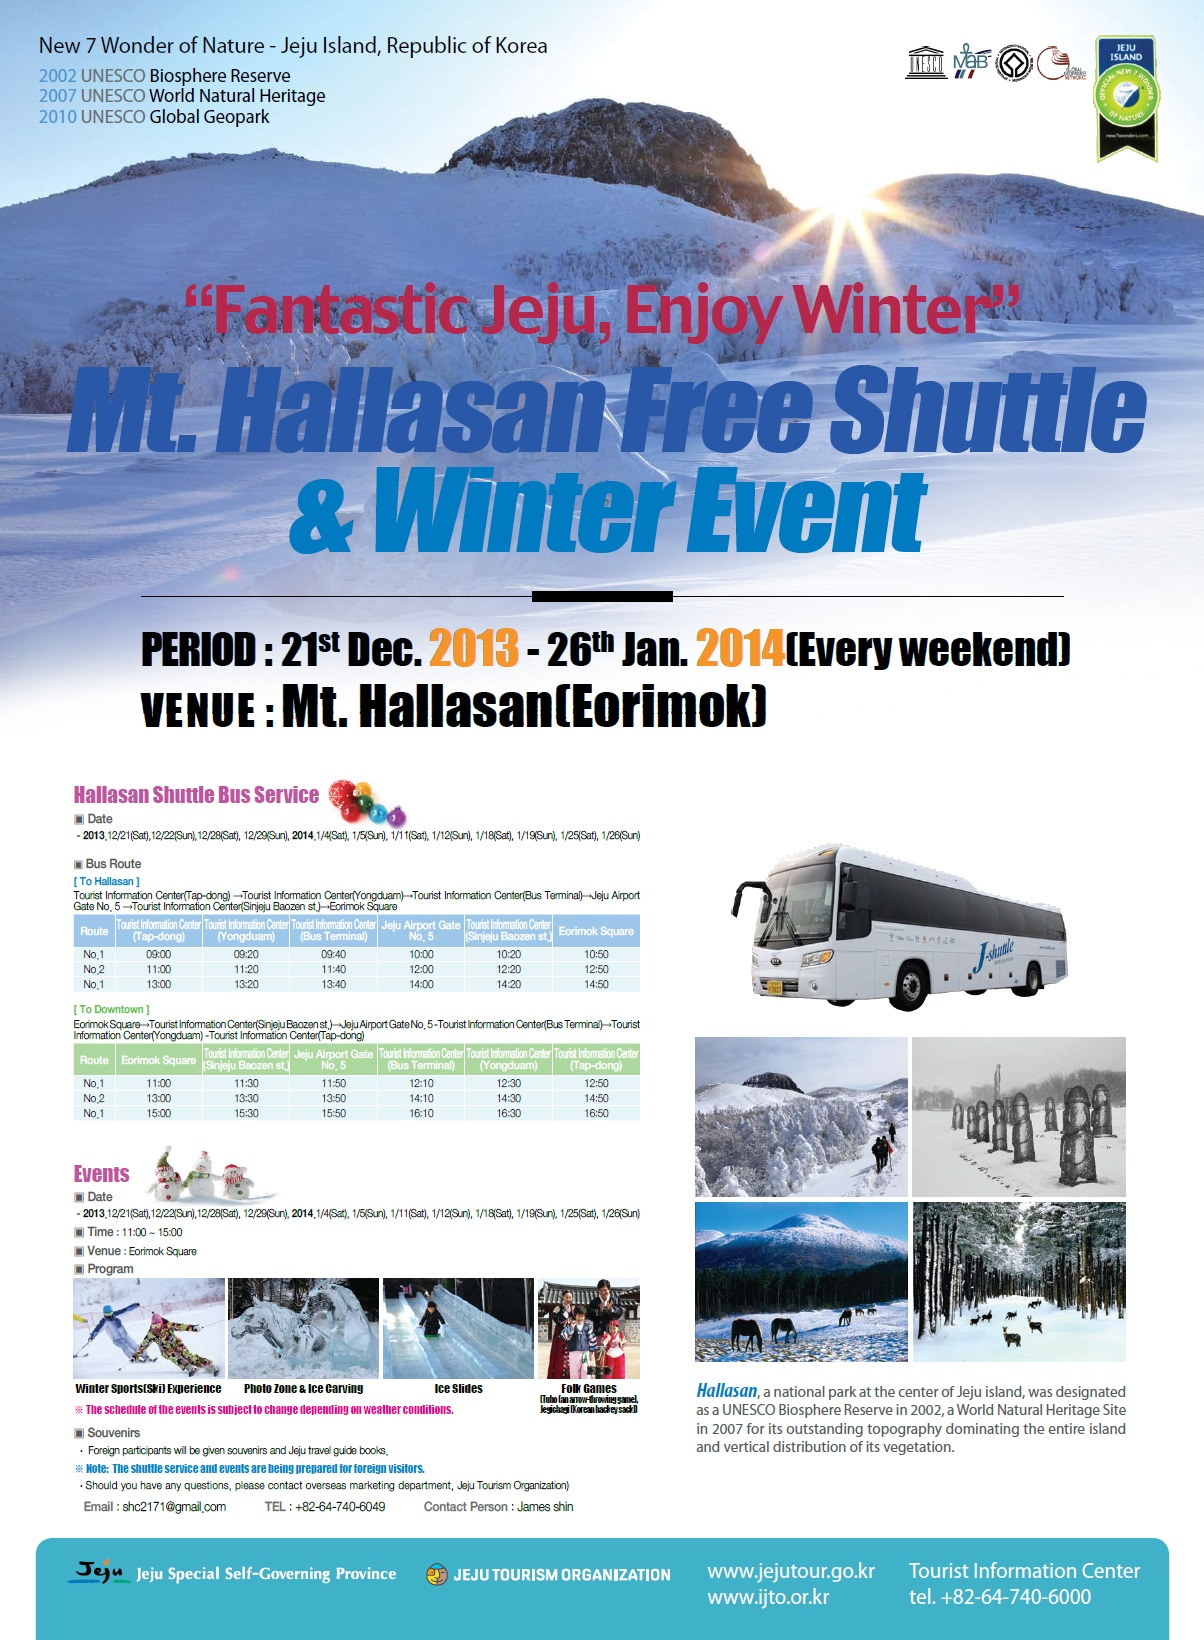 Free Jeju shuttle bus for Winter season